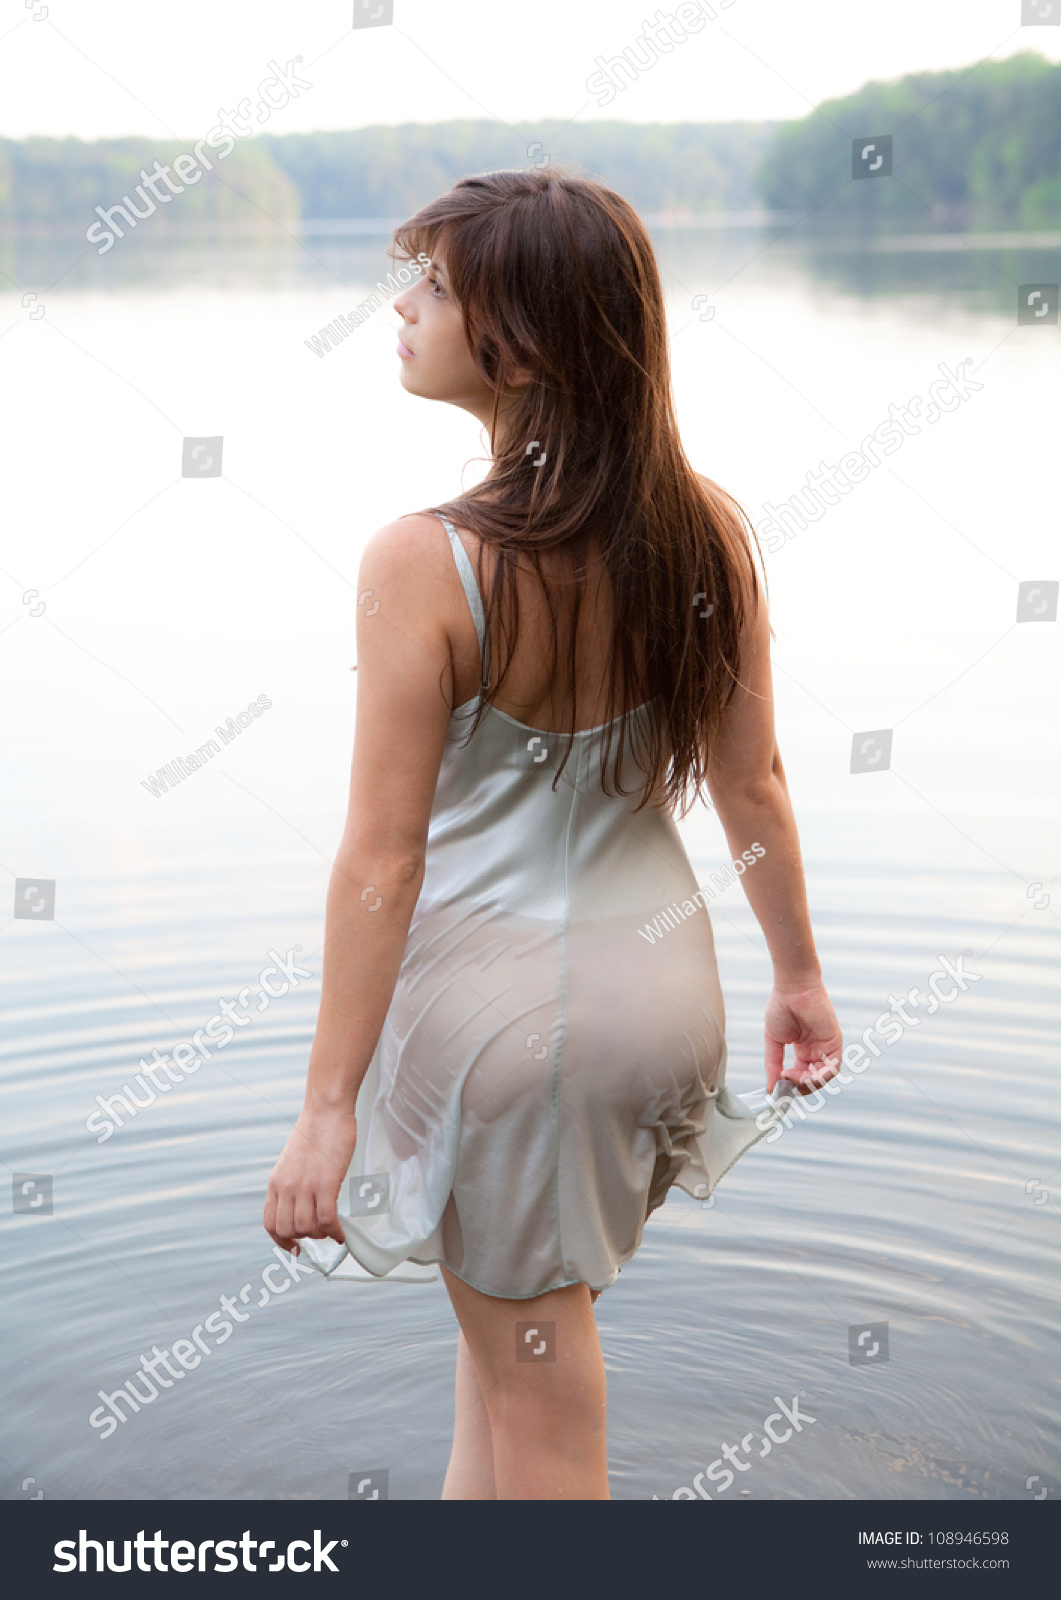 ...http://www.shutterstock.com/pic-108946598/stock-photo-woman-wading-in-lake-with-wet-dress.html.